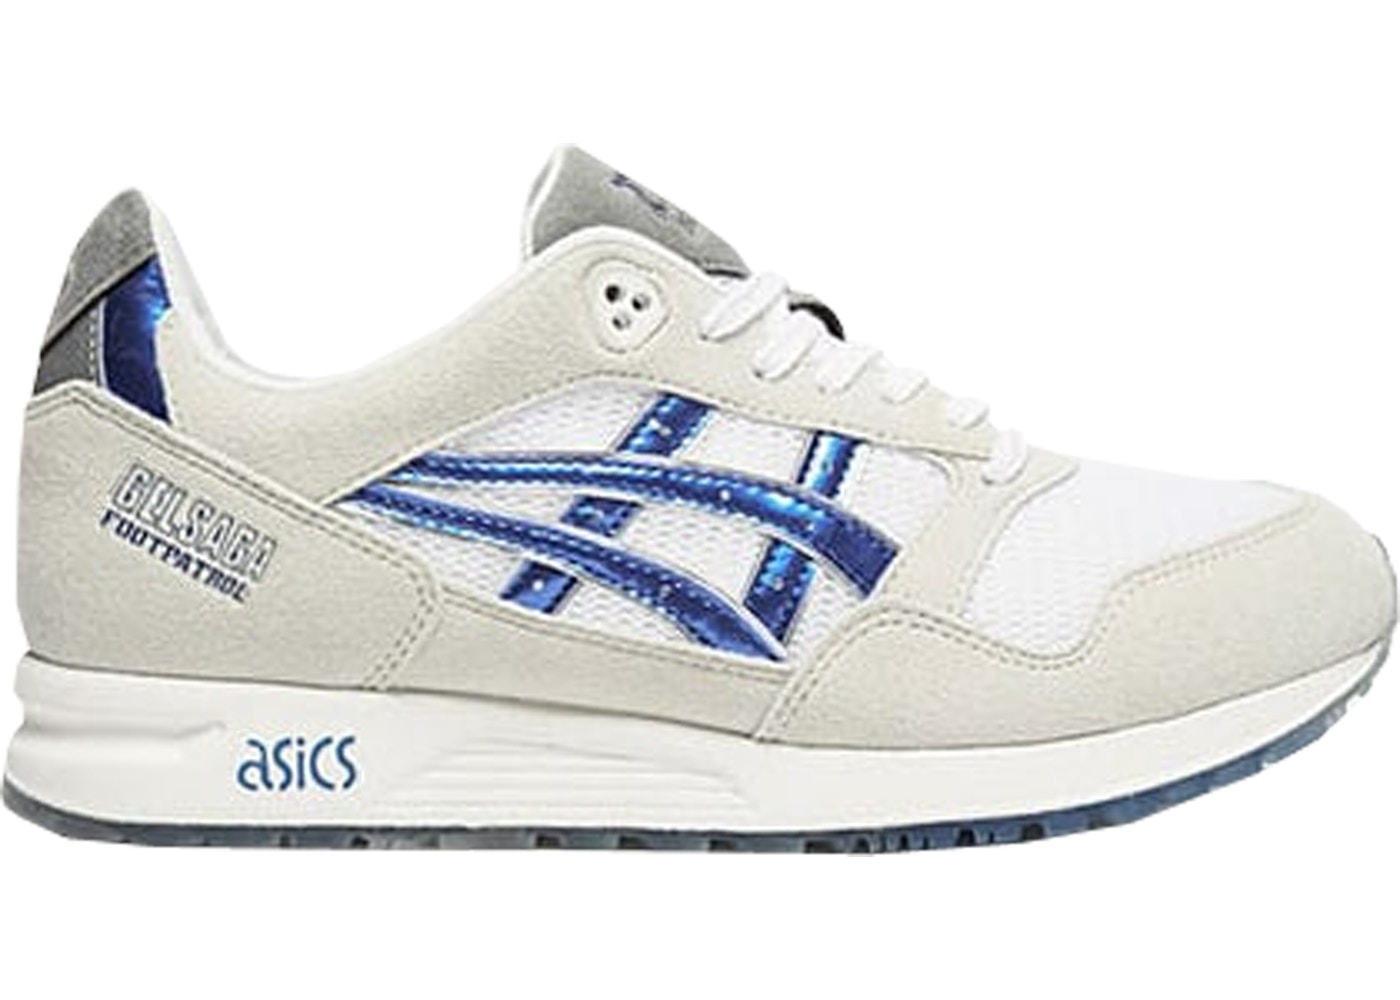 detailed look e144b 9a8c3 Asics Gel-Saga Foot Patrol Gundam